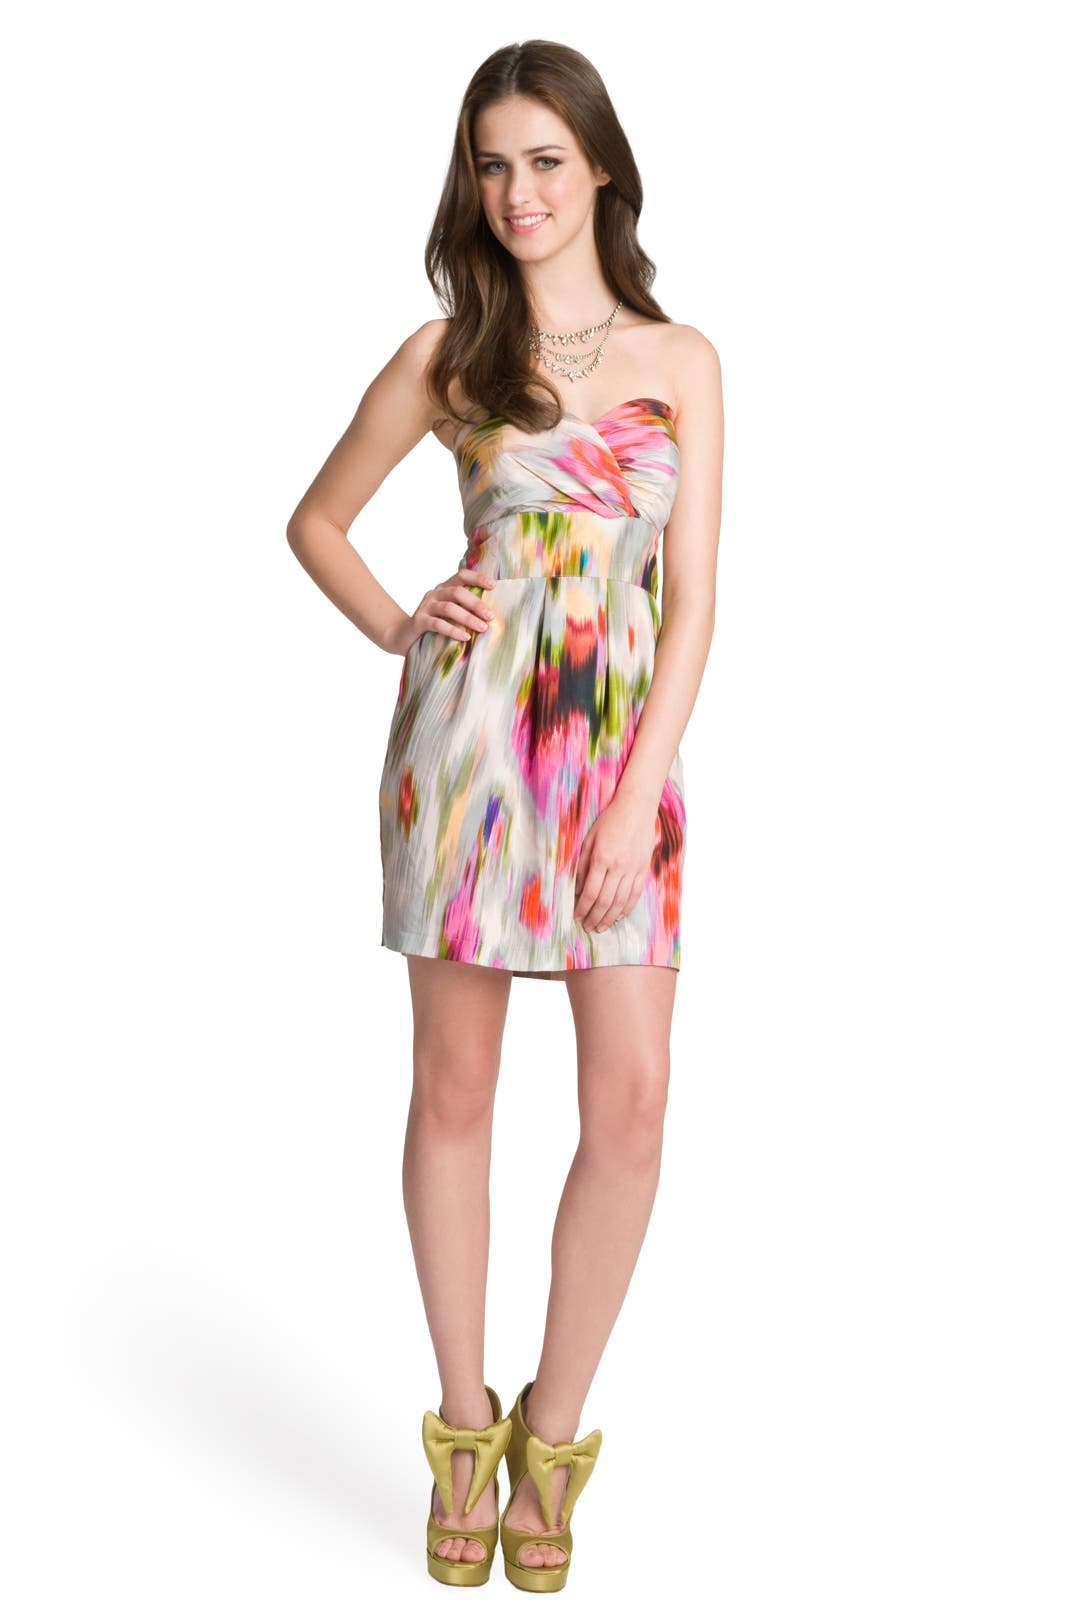 Starburst Strapless Dress by Mark & James by Badgley Mischka